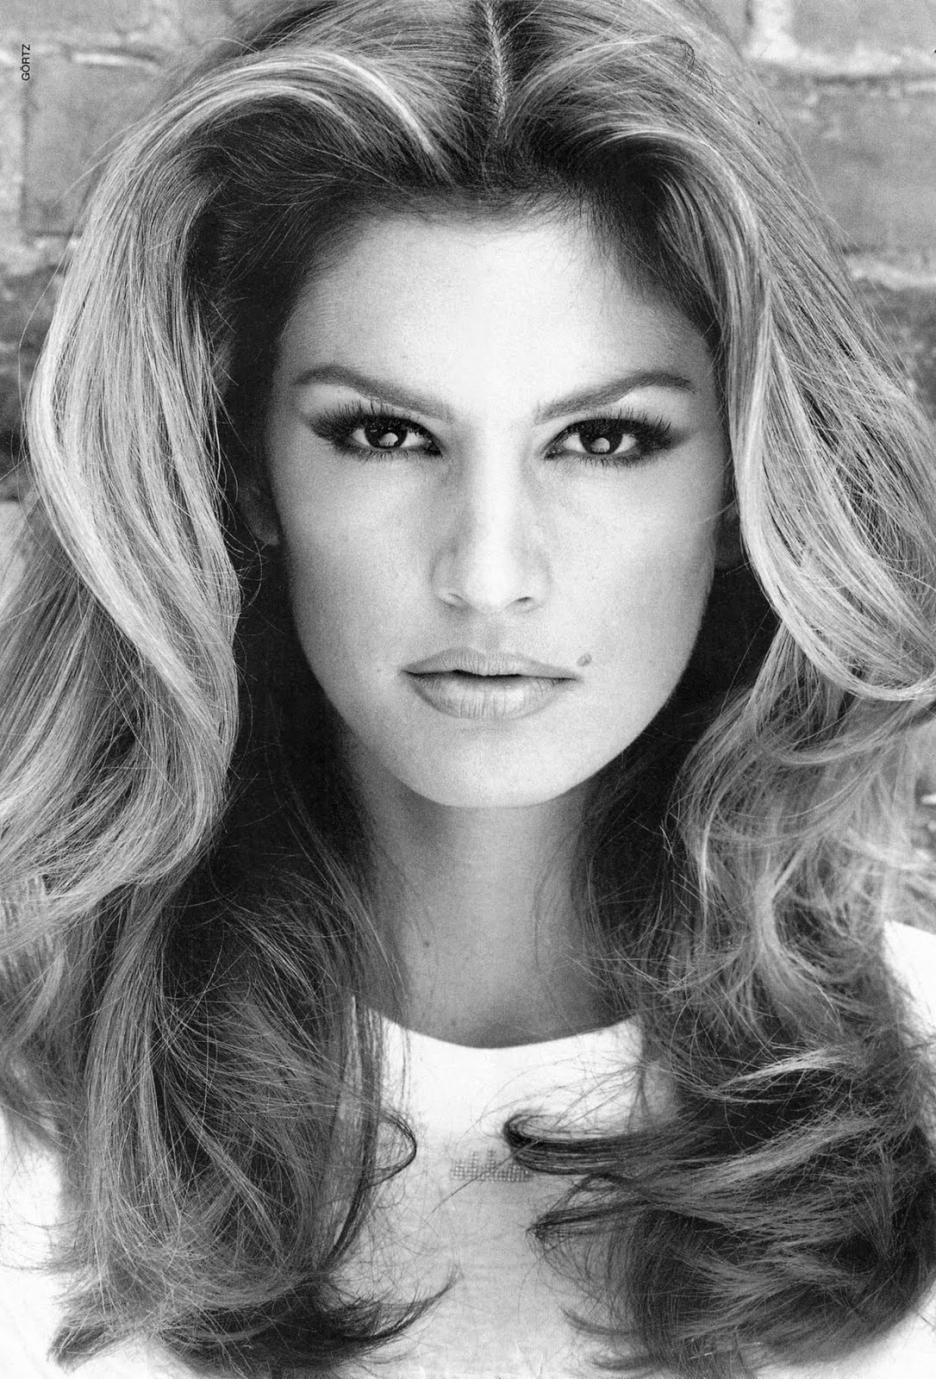 a-guide-to-cool-cindy-crawford-folkr-blog-photo-mode-3